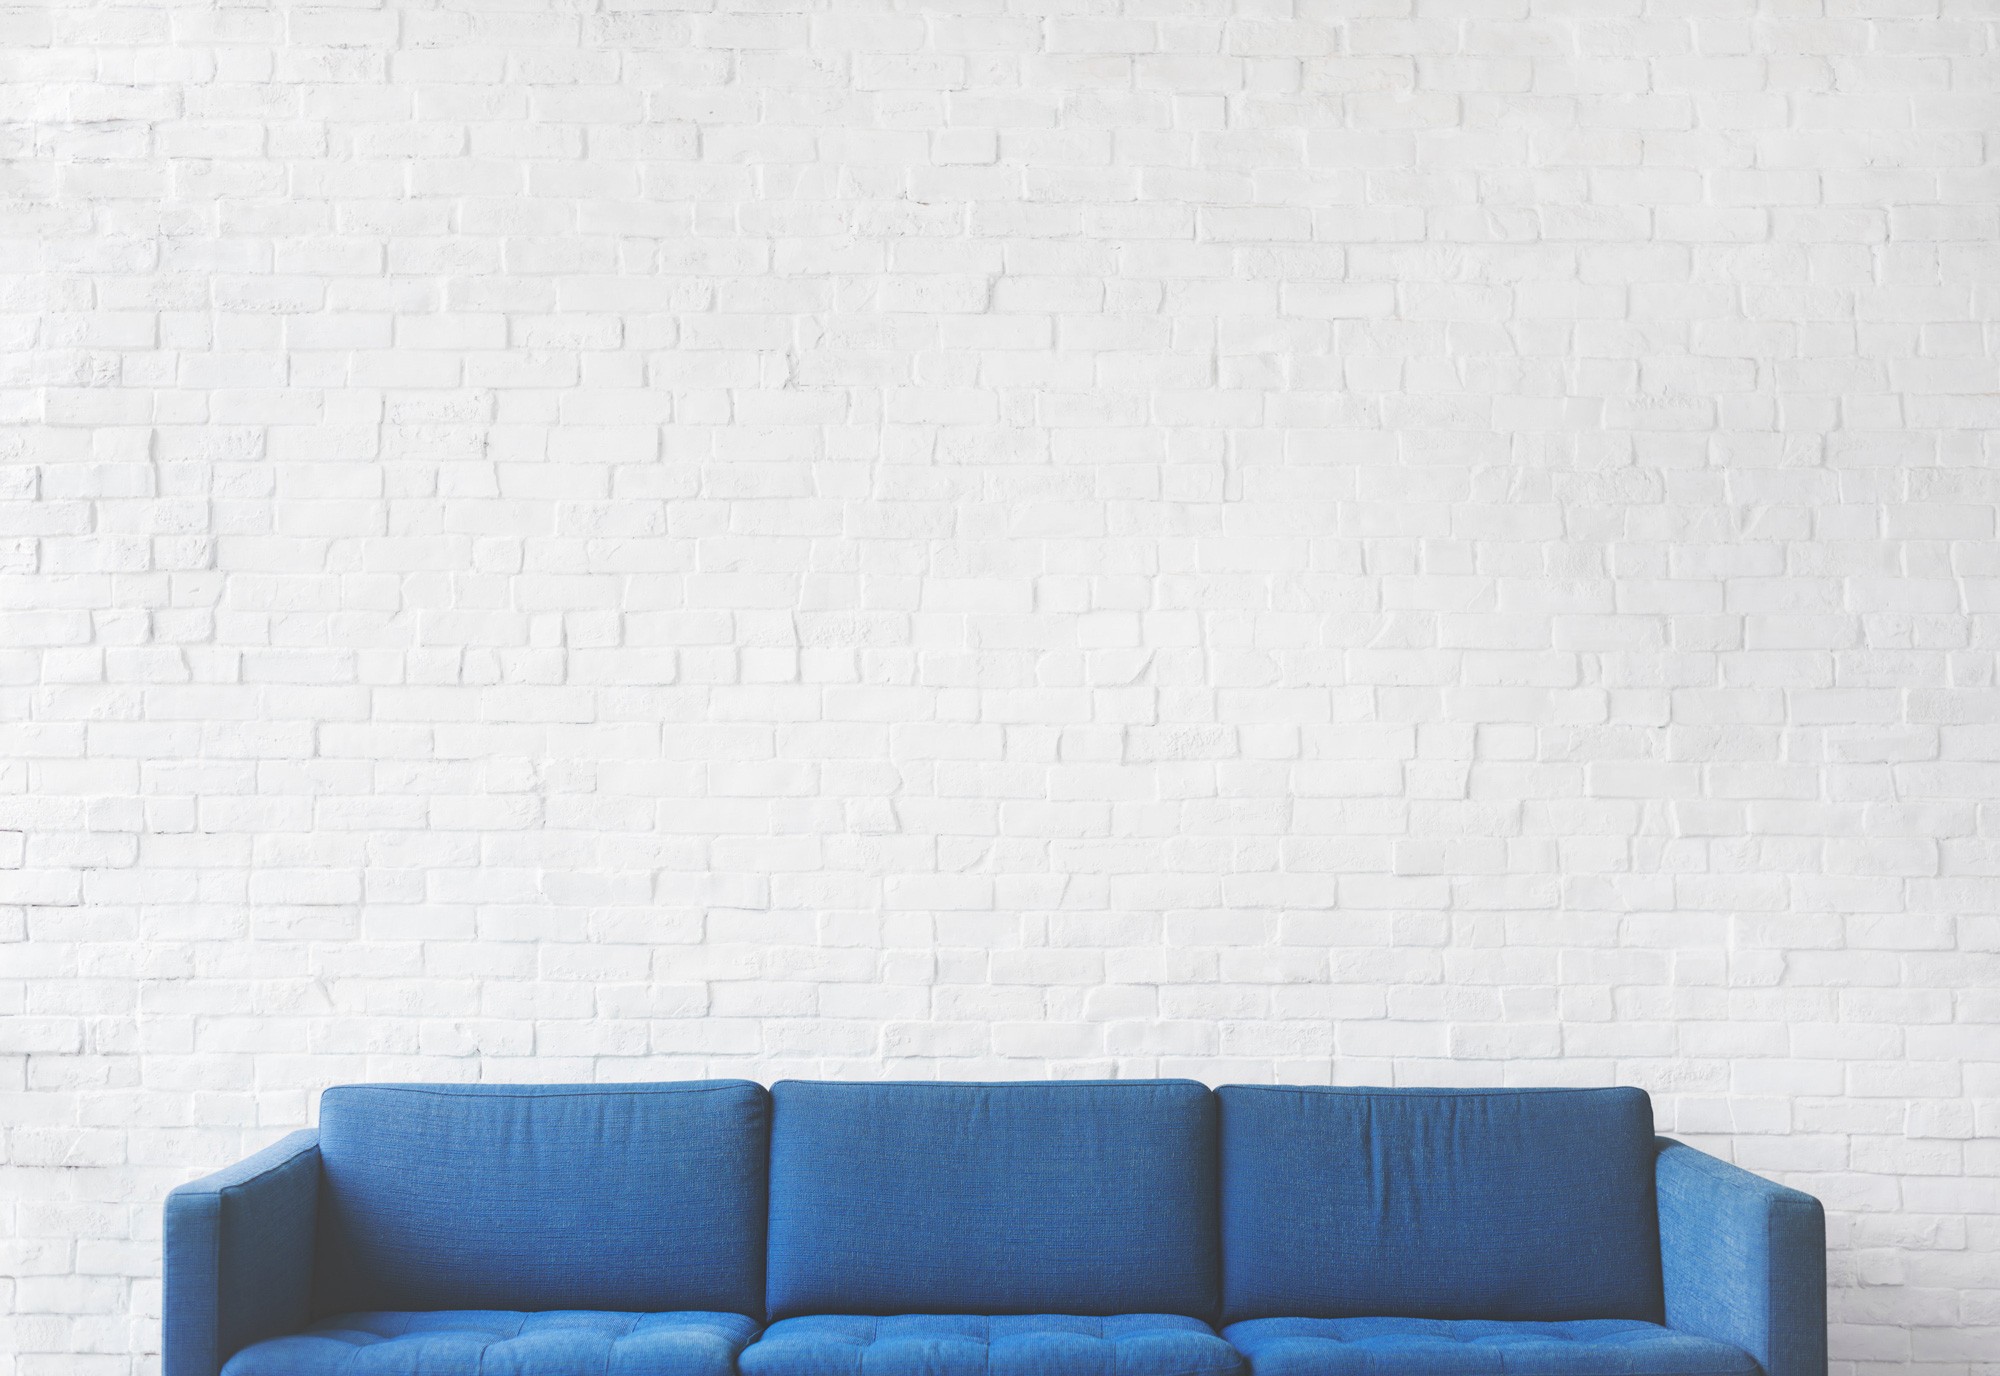 Blue Couch in front of white brick wall.